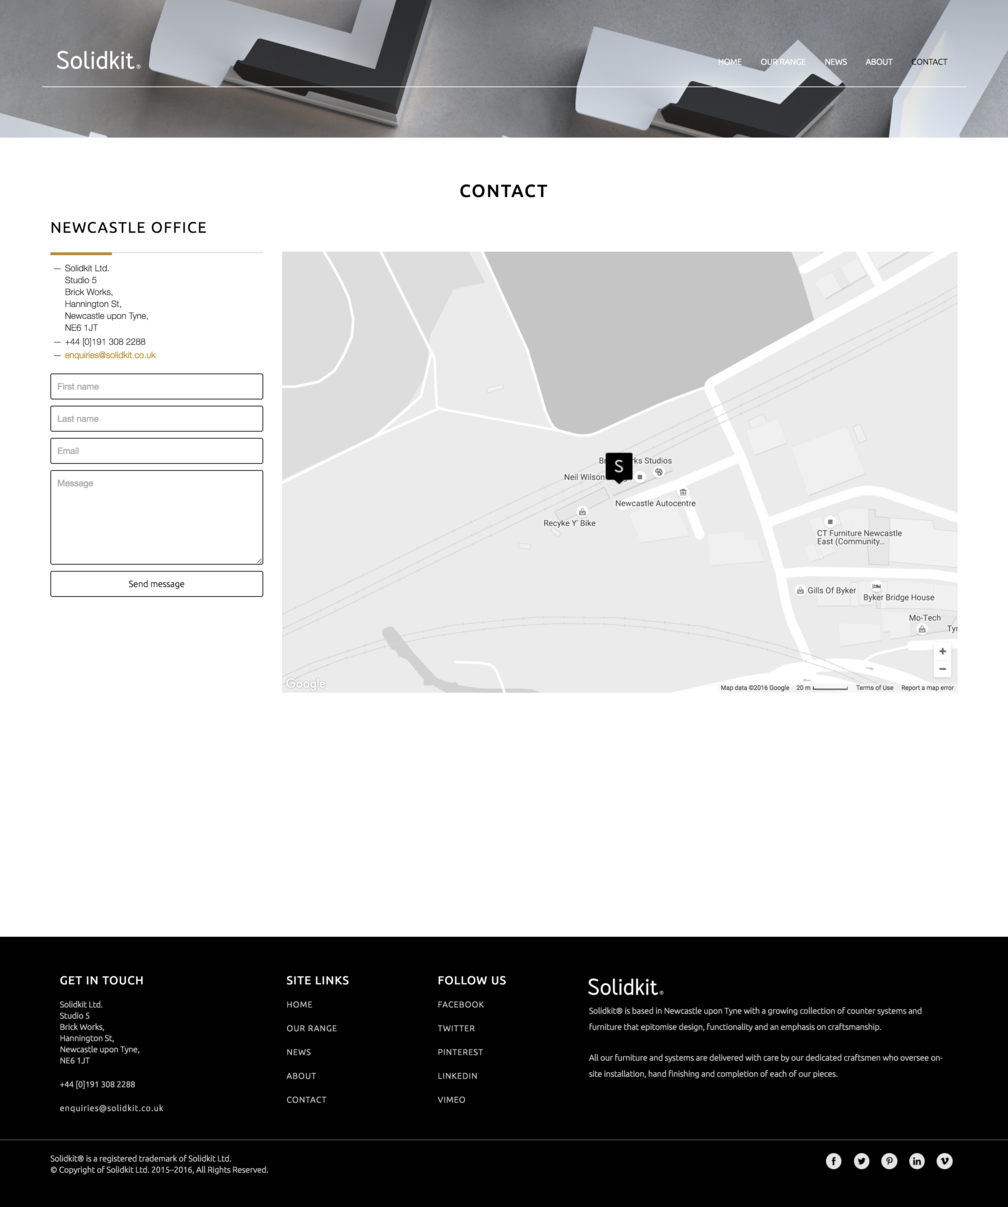 Contact page design for Solidkit